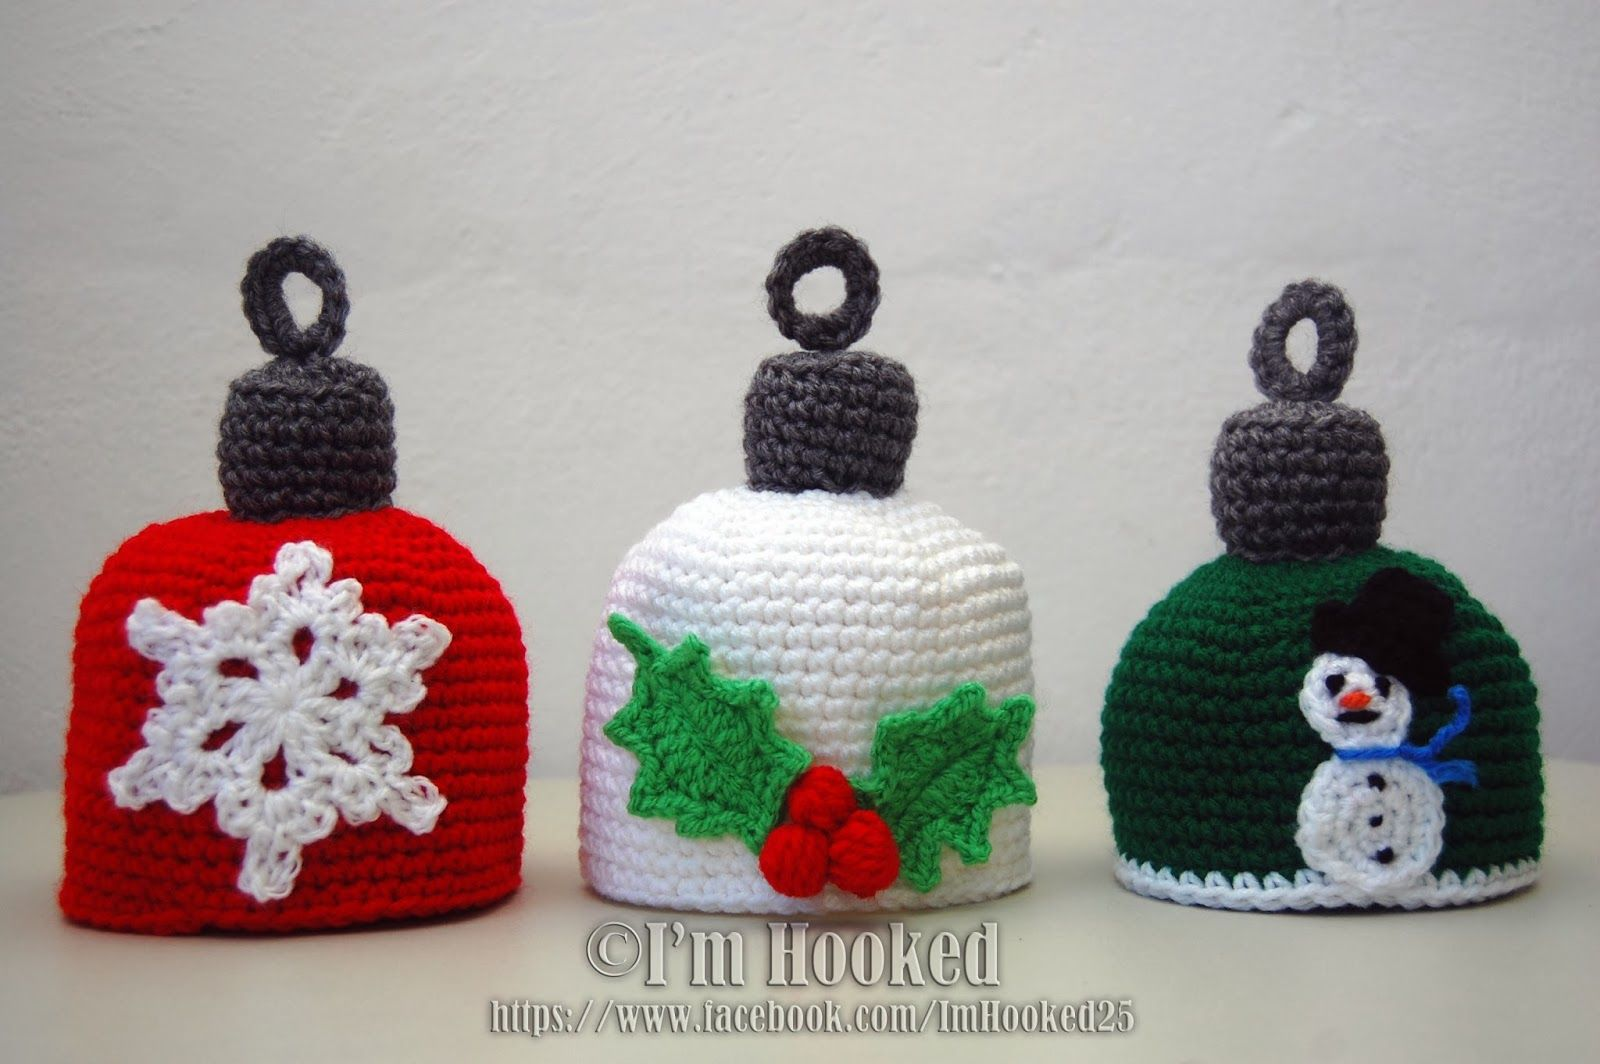 Free Crochet Pattern: Holiday Hat | Crochet #2 | Pinterest ...